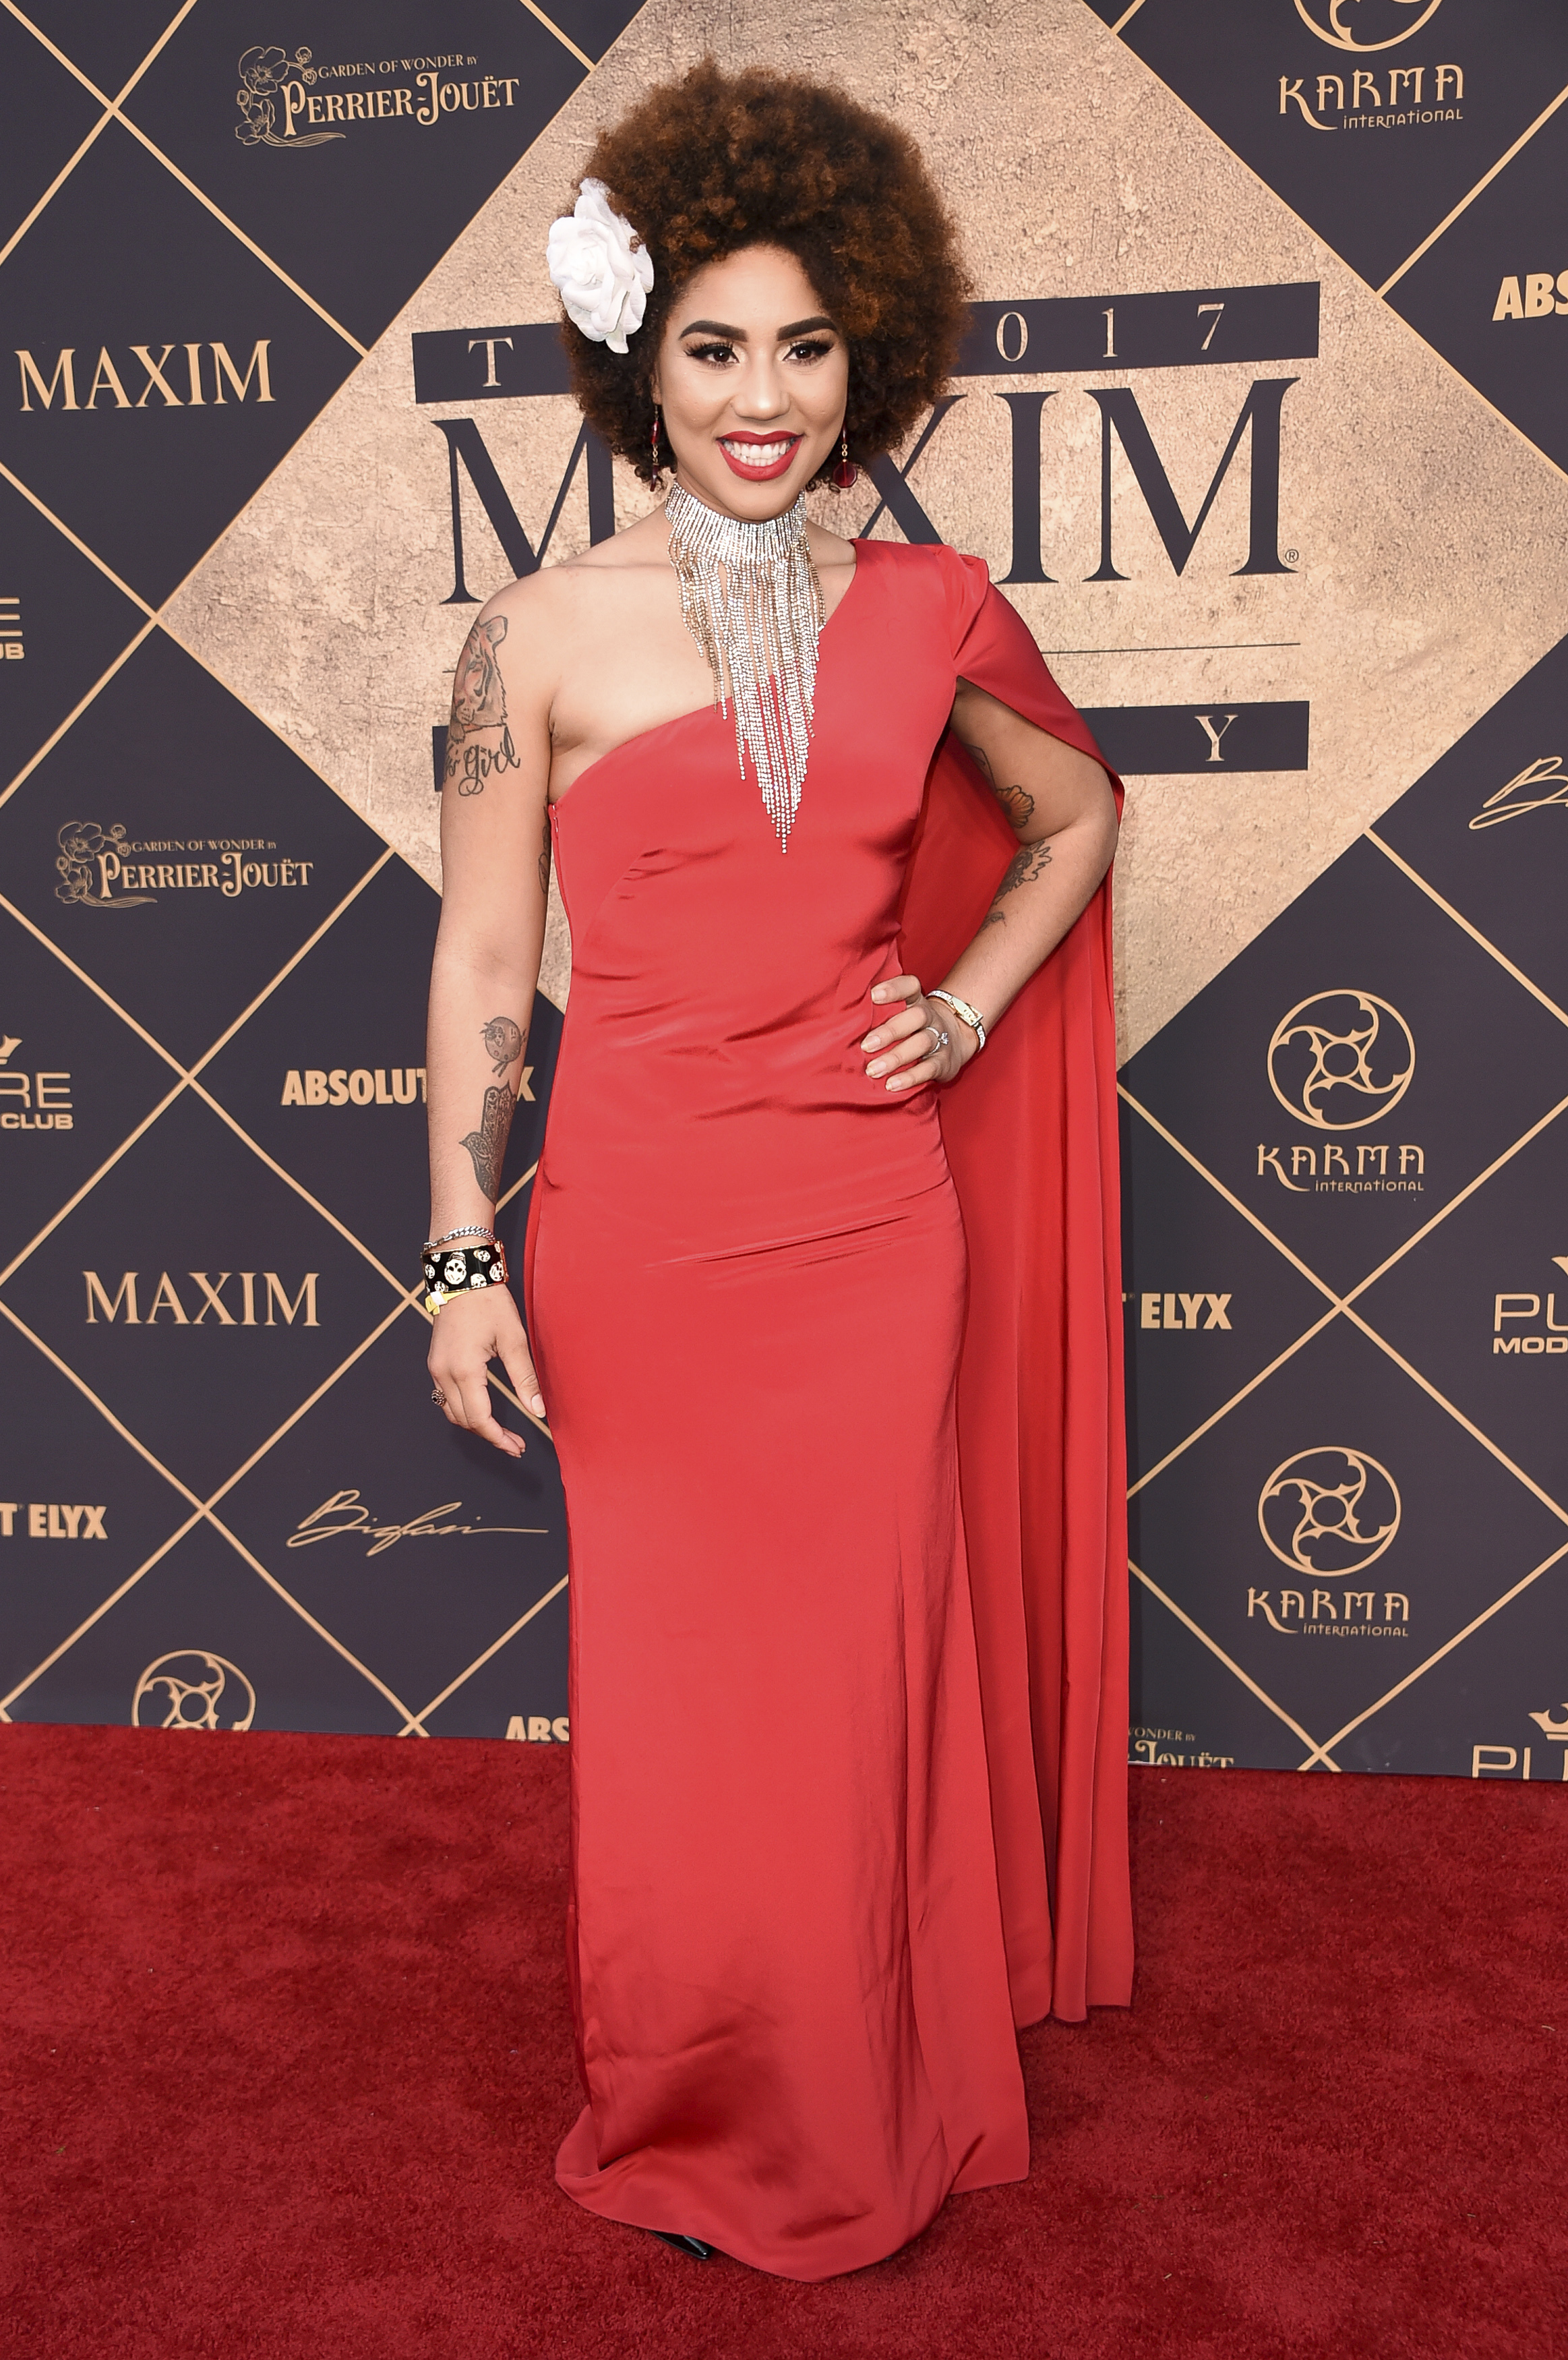 Joy Villa attends the 2017 MAXIM Hot 100 Party at the Hollywood Palladium on Saturday, June 24, 2017, in Los Angeles. (Photo by Richard Shotwell/Invision/AP)